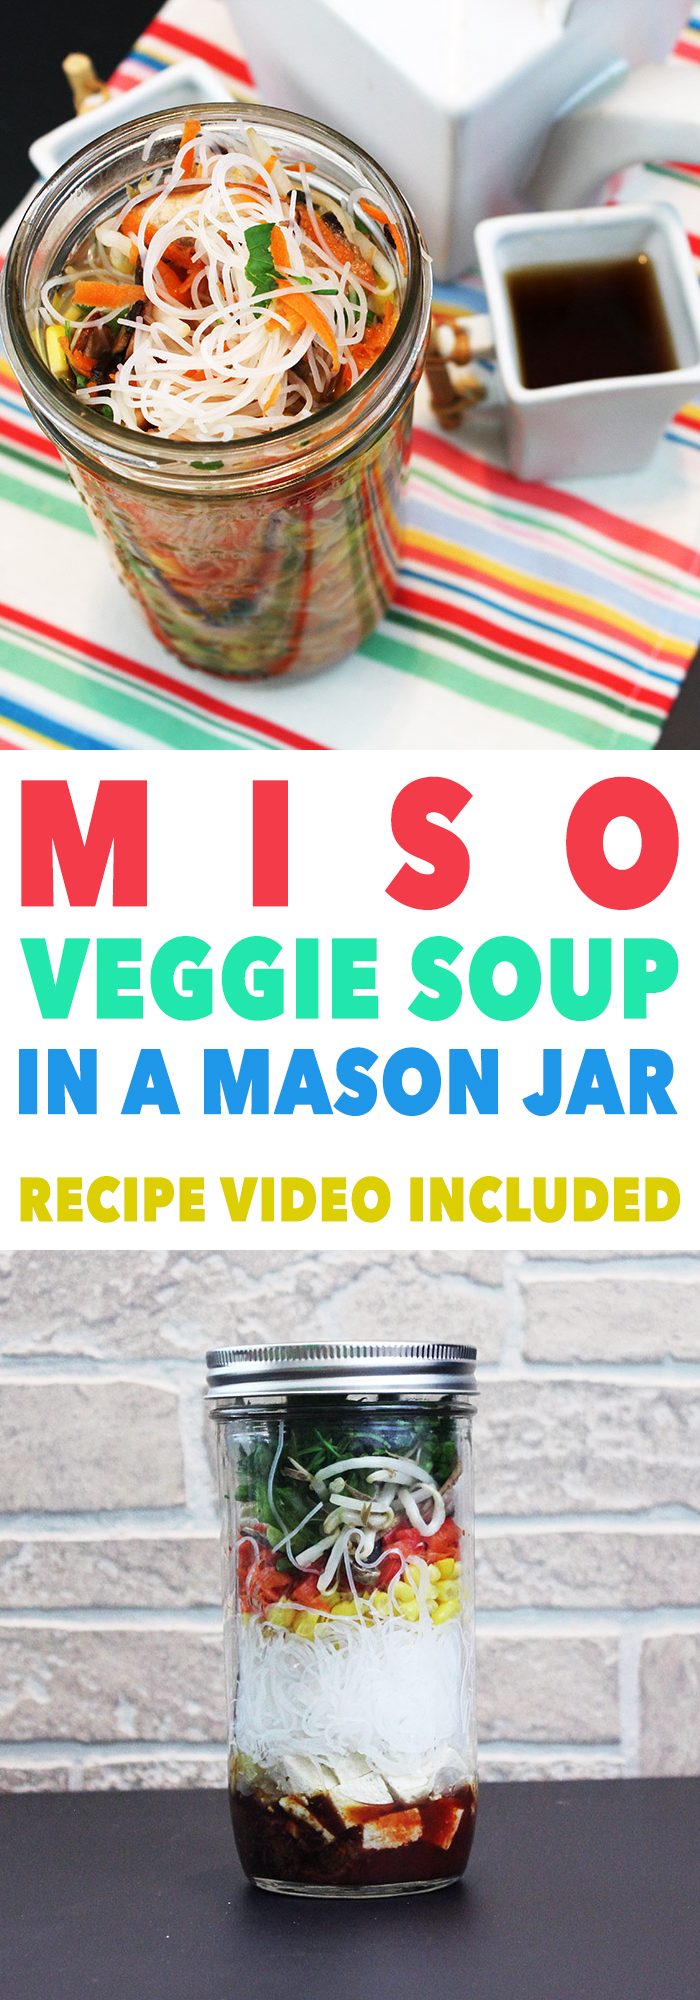 This miso veggie soup recipe is easily made in one mason jar.